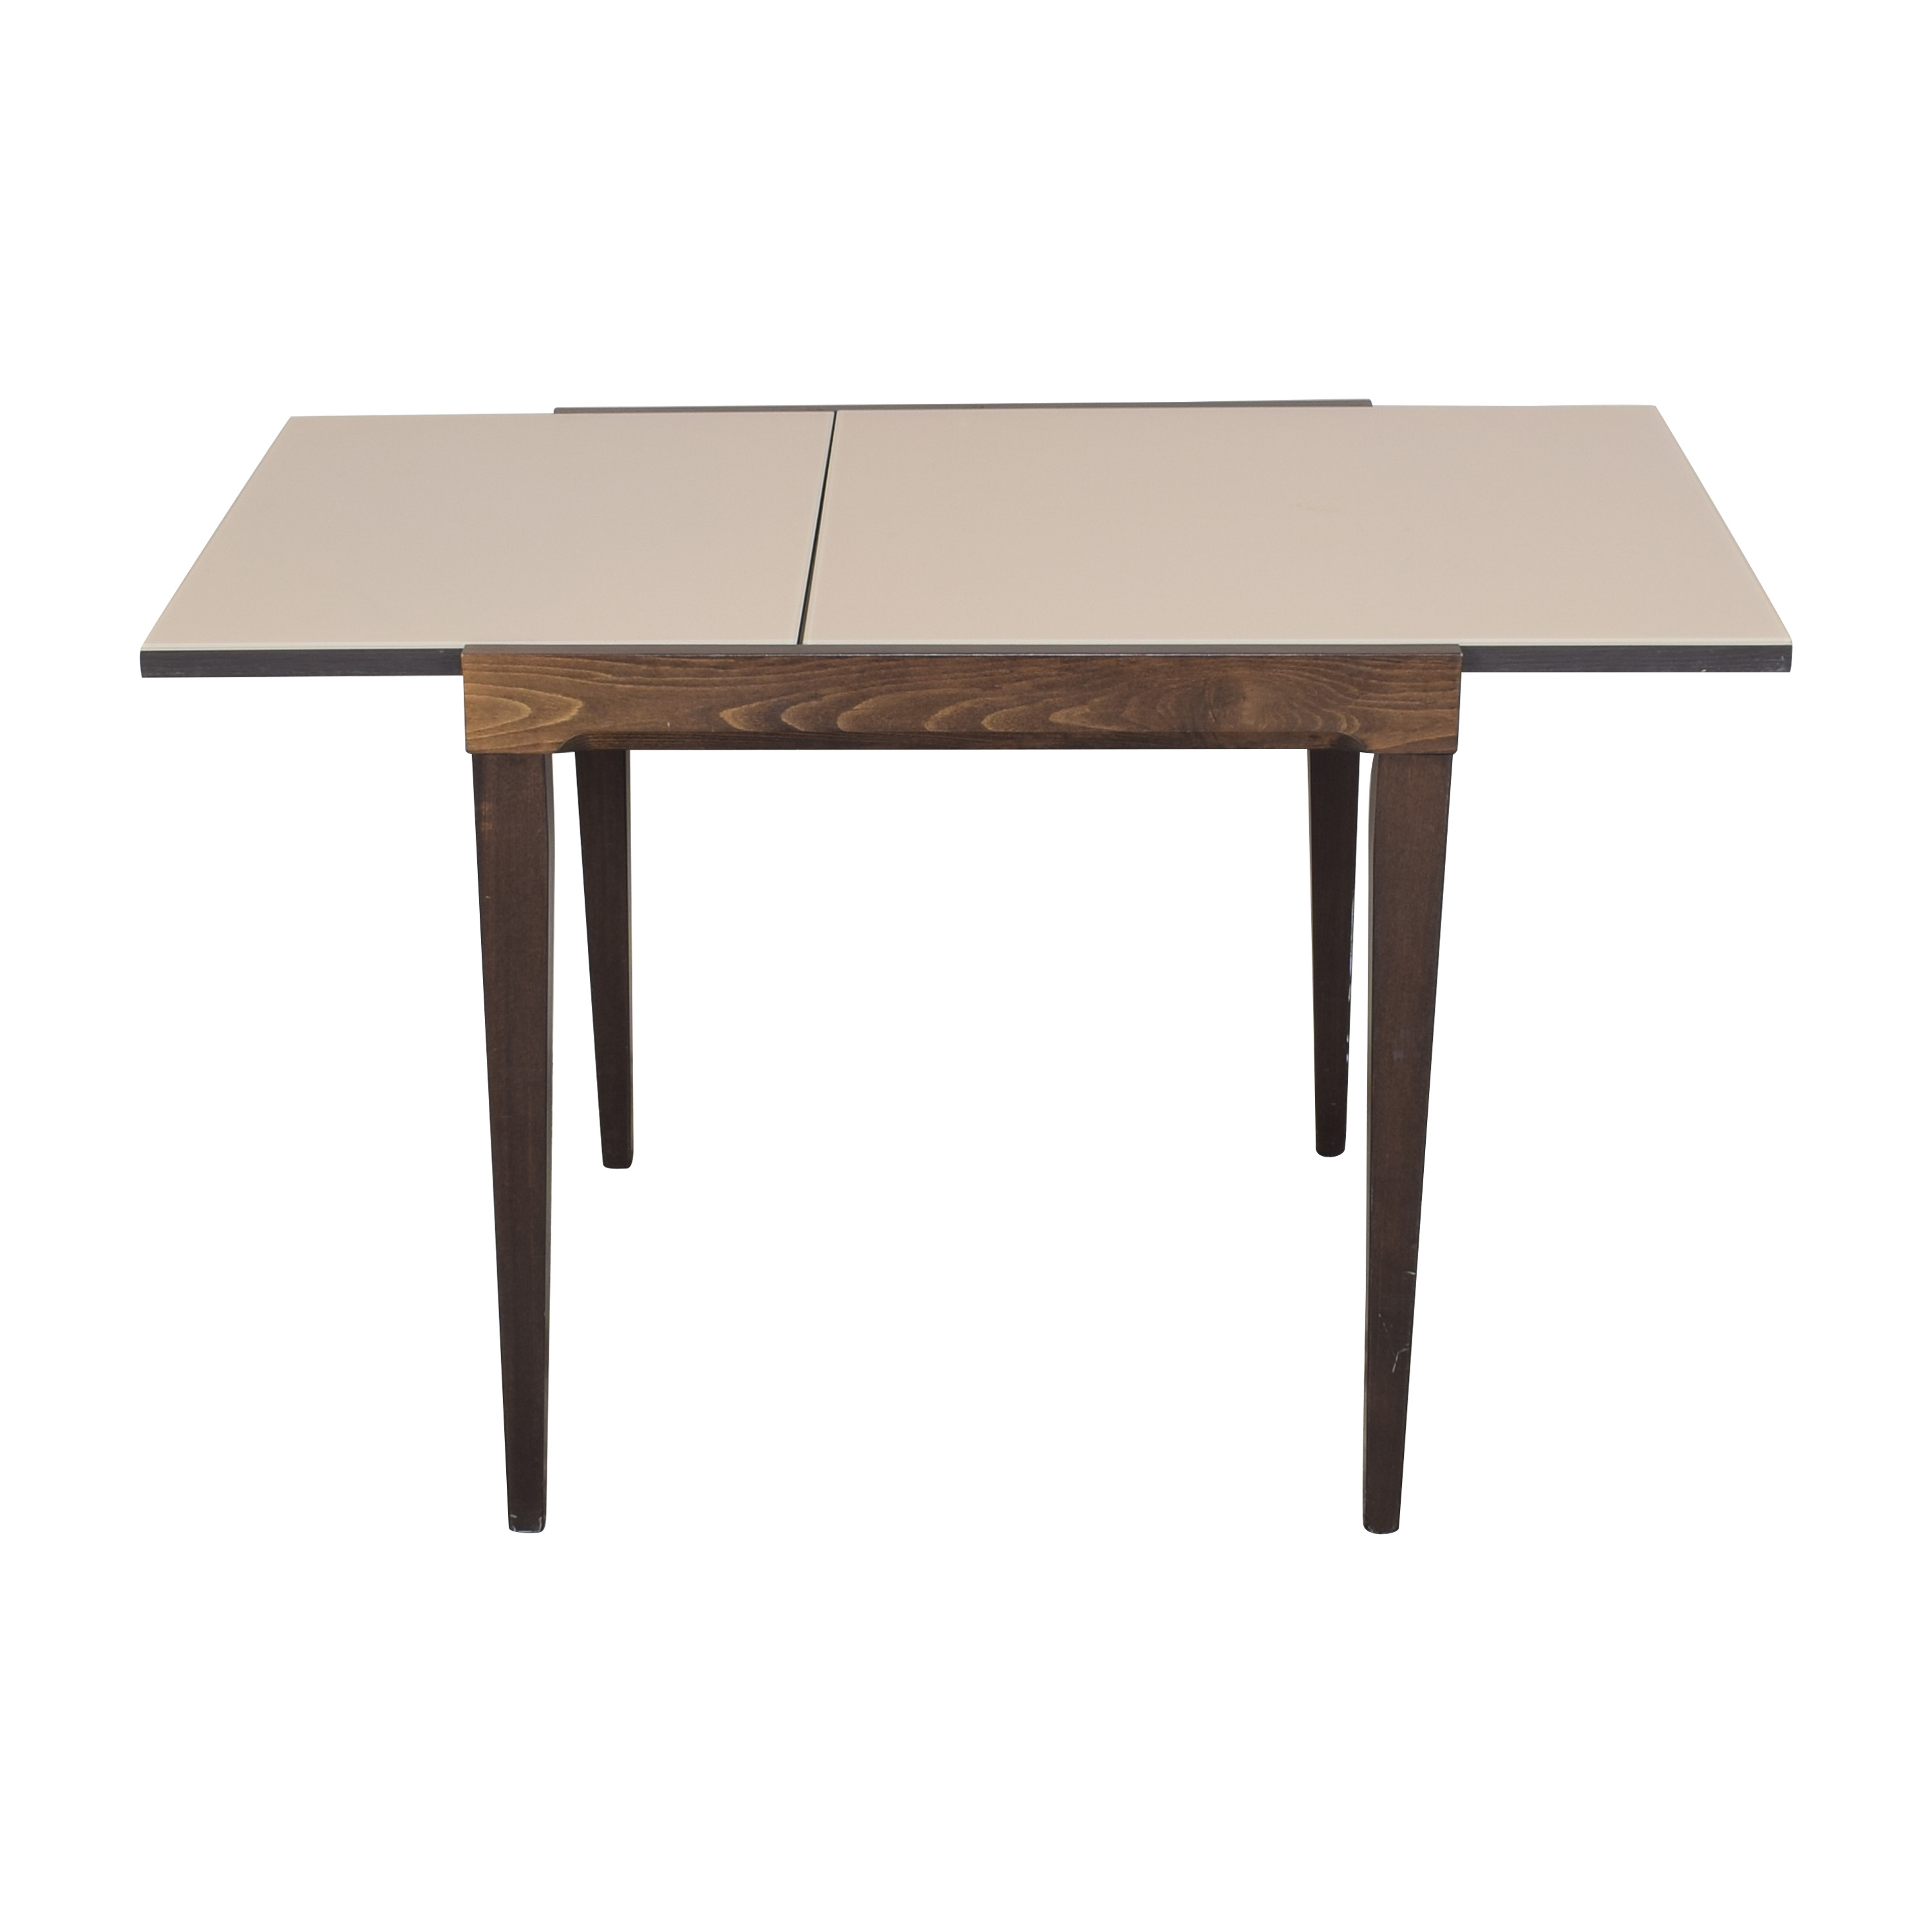 Macy's Square Extendable Dining Table Macy's